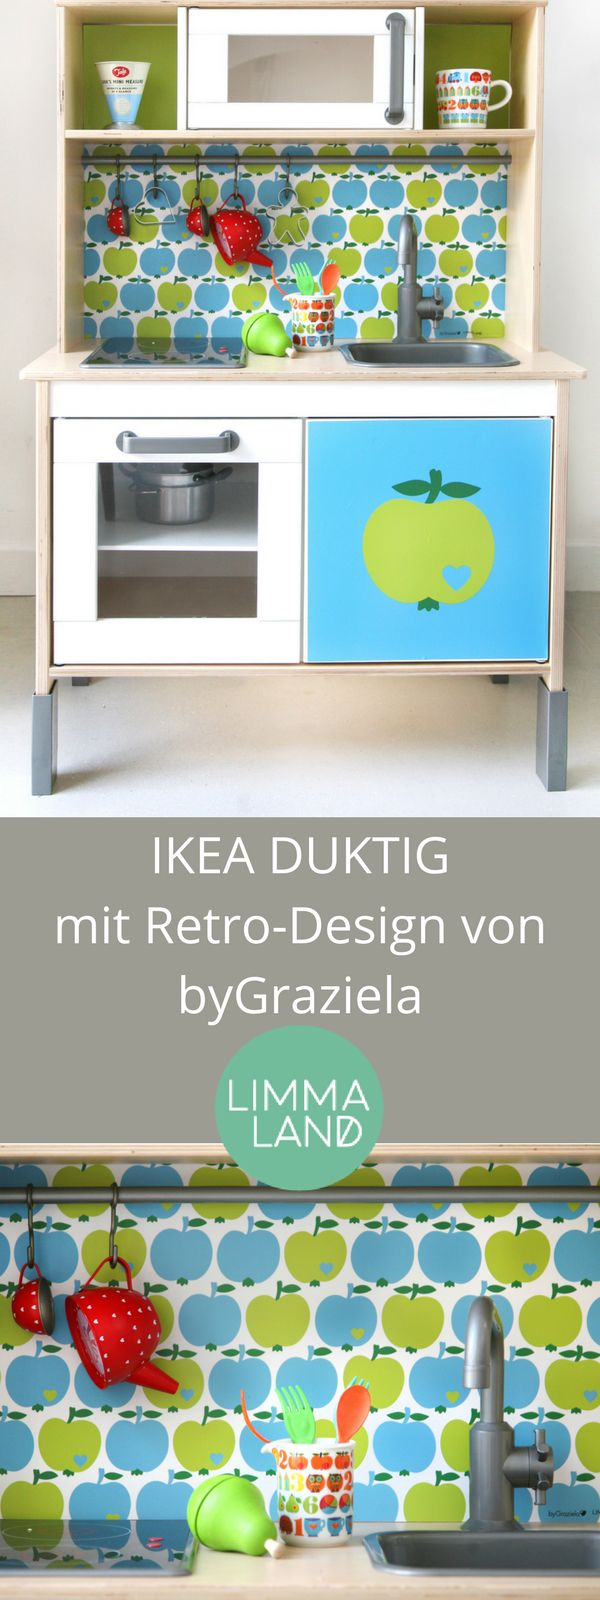 97 besten ikea hack duktig kinderk che bilder auf. Black Bedroom Furniture Sets. Home Design Ideas